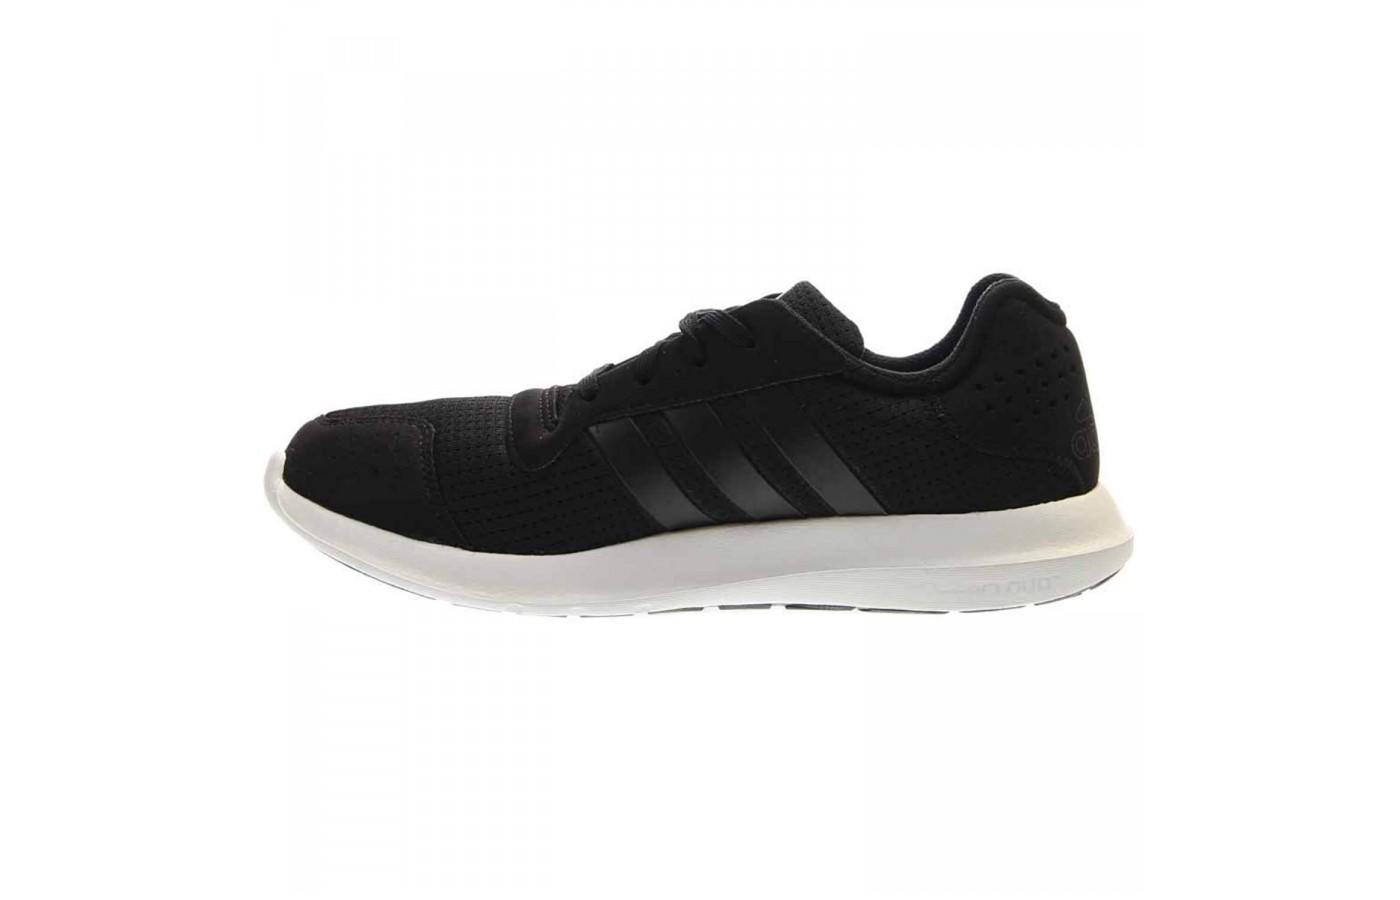 The high contrast on the Adidas Element Athletic is stylish and attractive